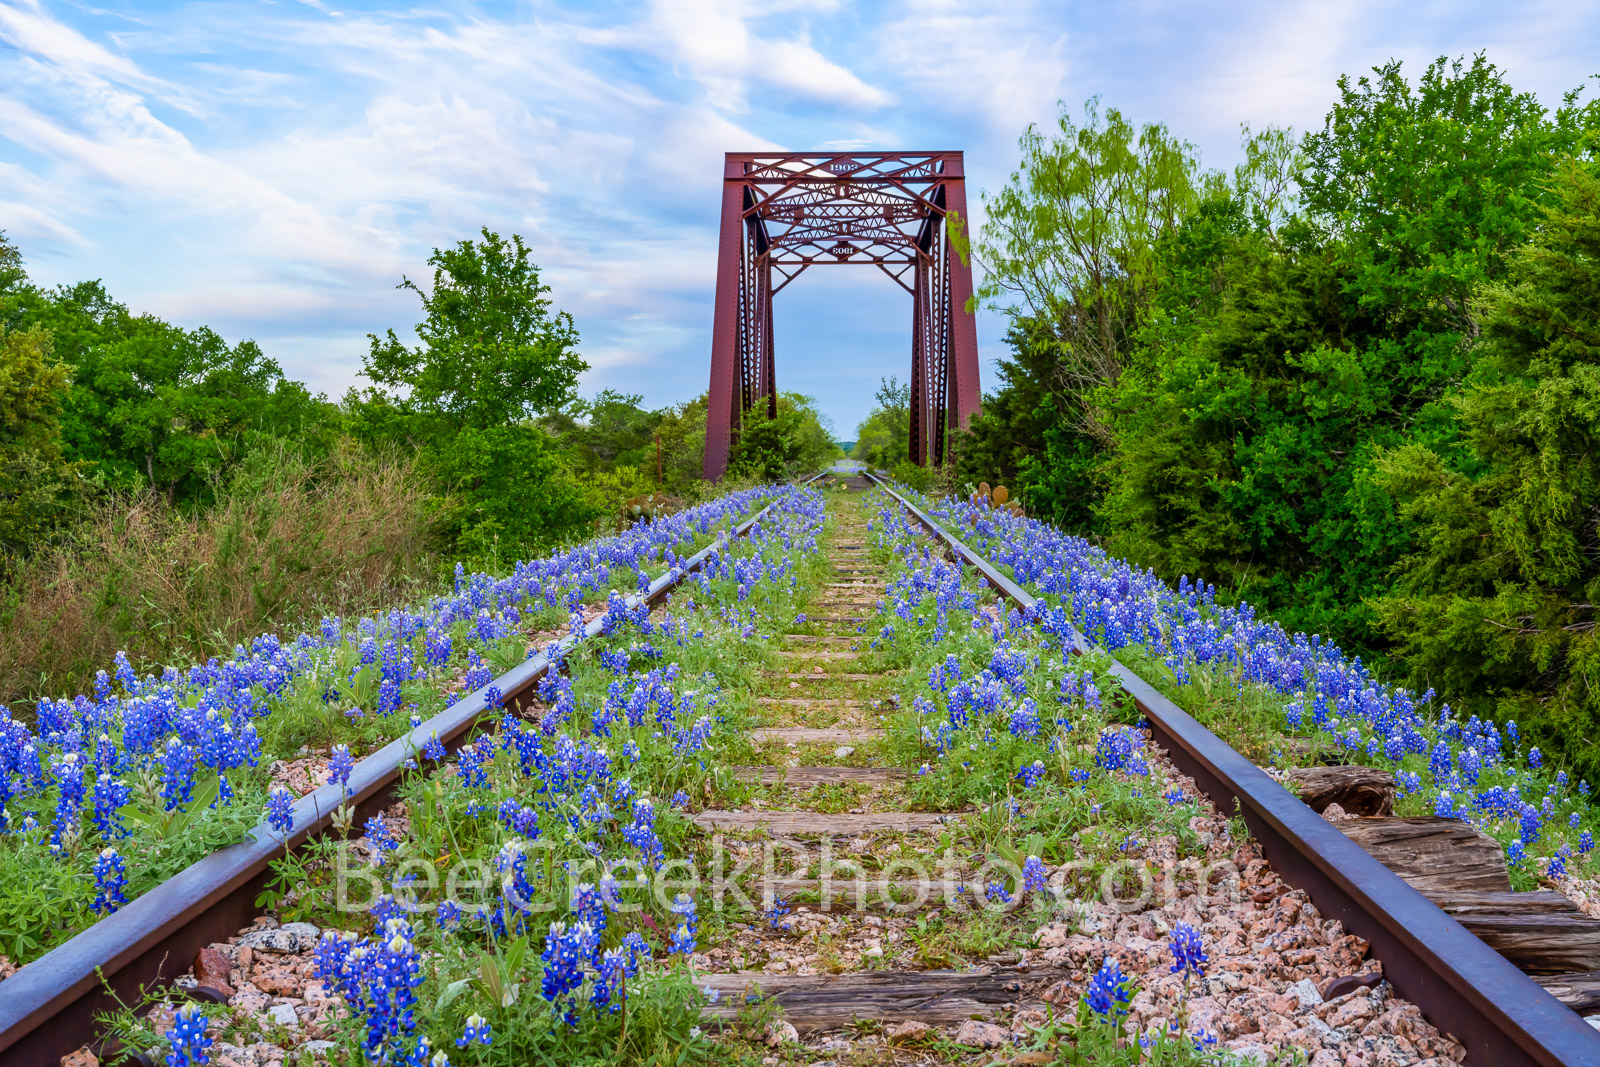 Bluebonnets Wildflowers Along the Track - This old abandoned rail road track with bluebonnets is something we have taken a few...